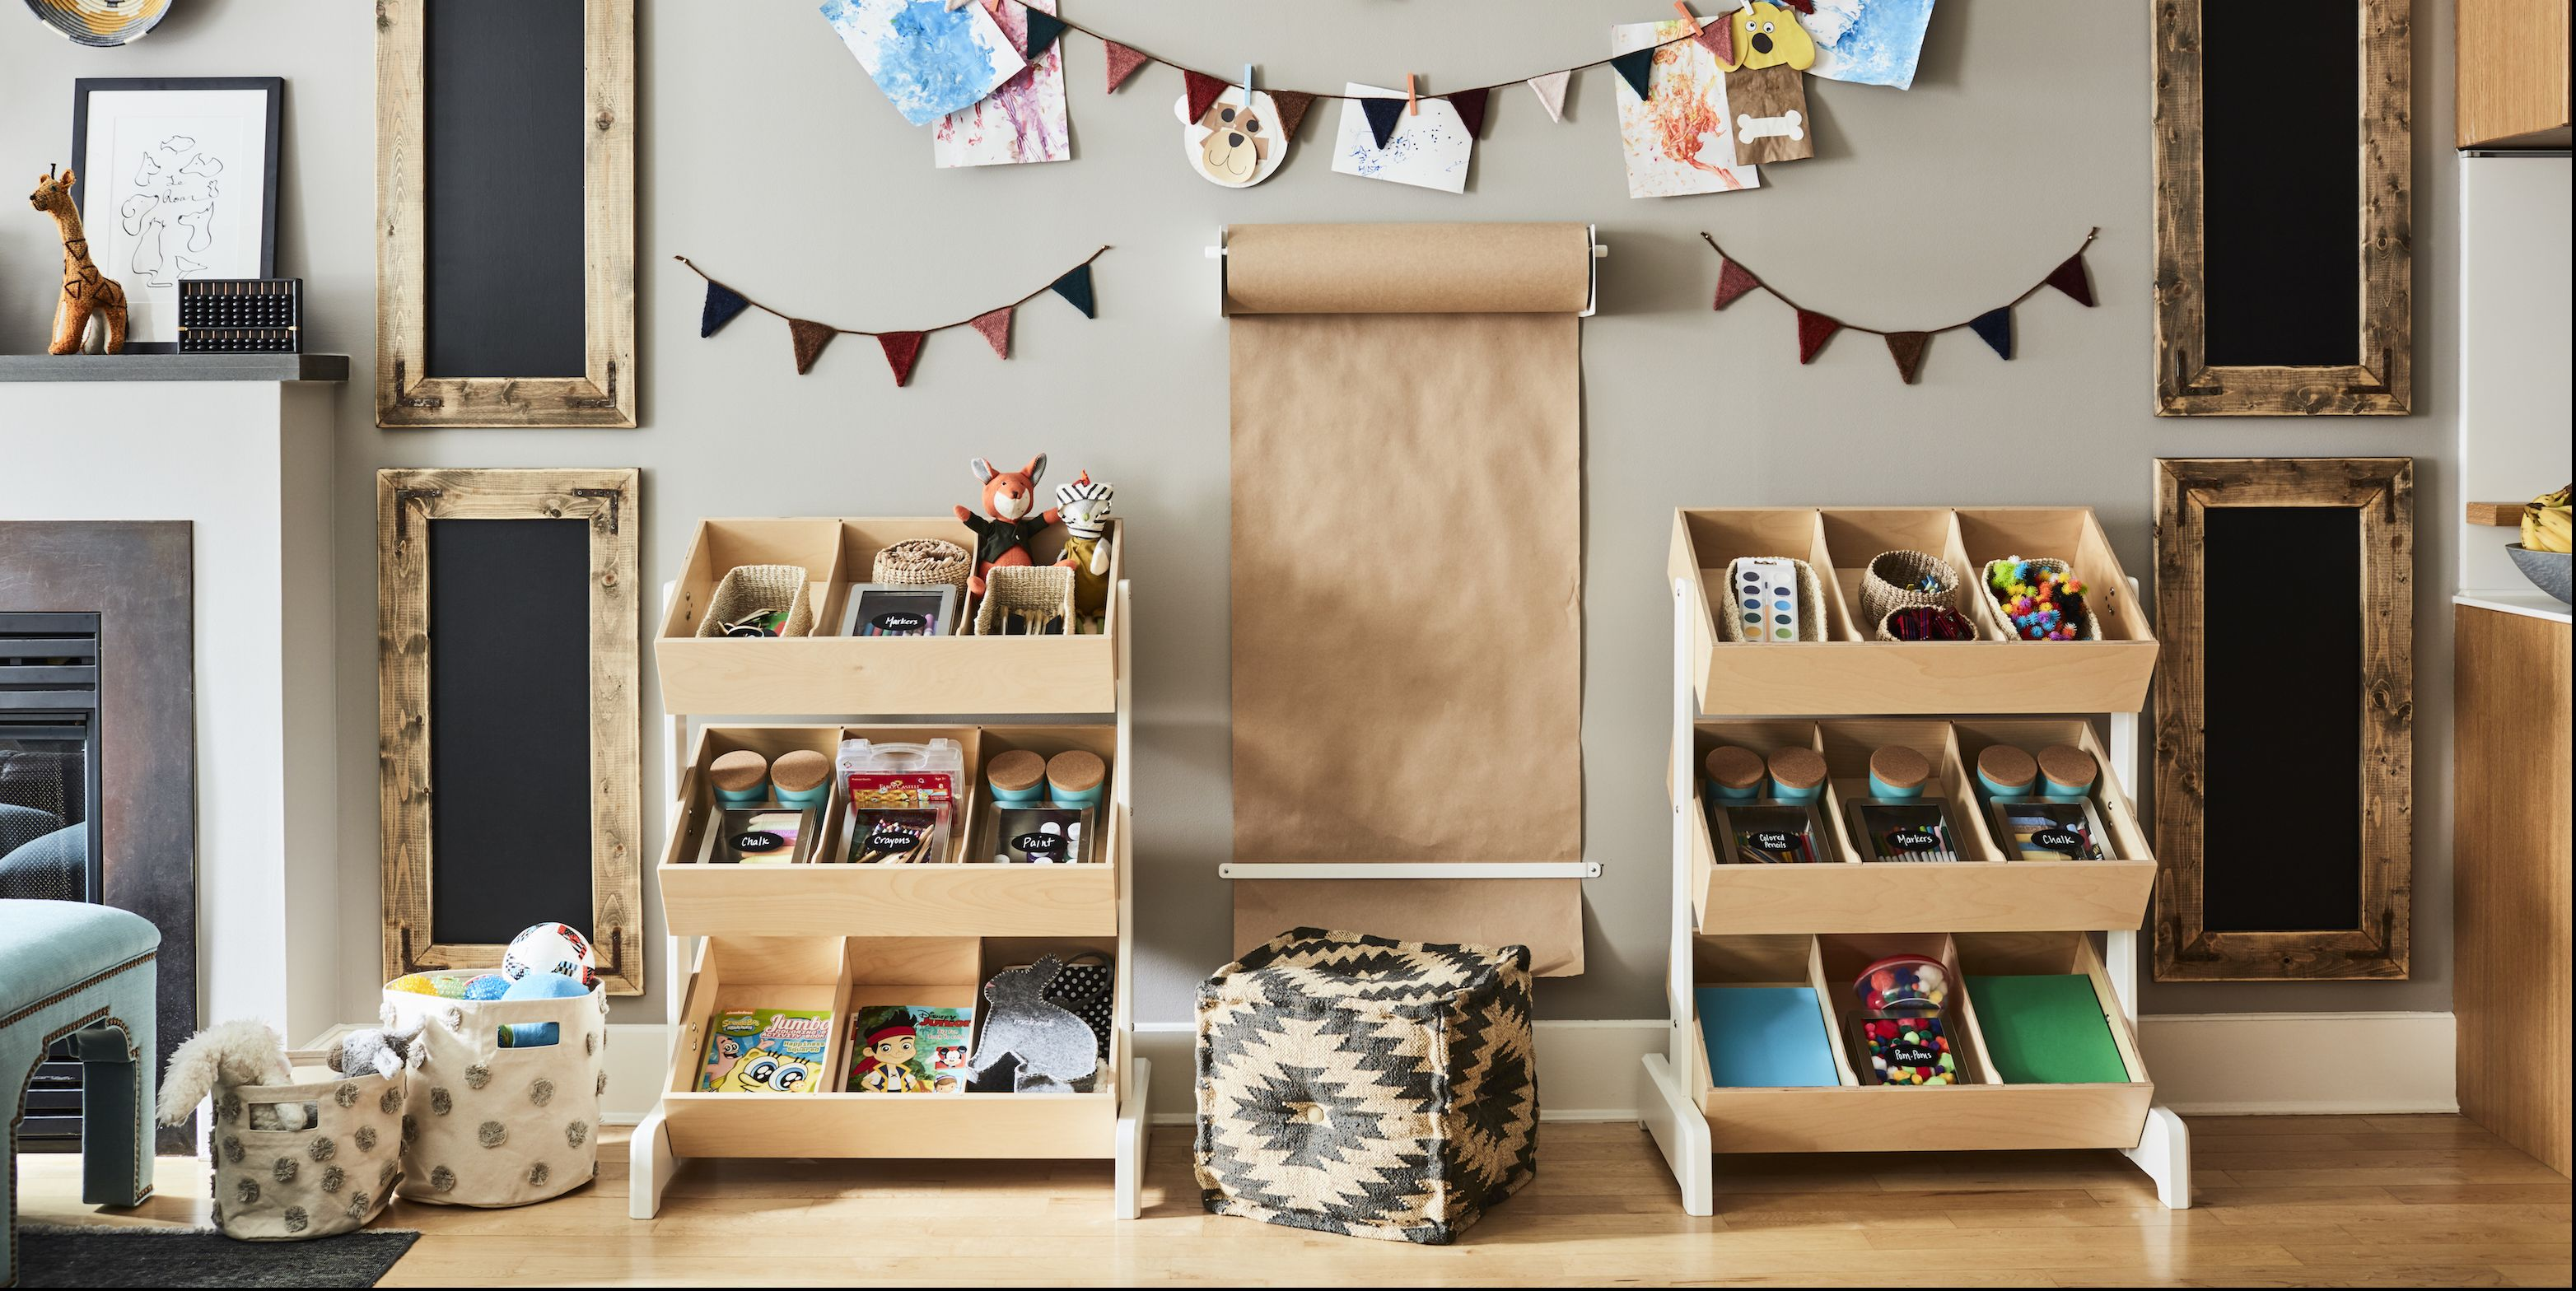 30+ Ways to Hide Toys and Clutter in Your Home